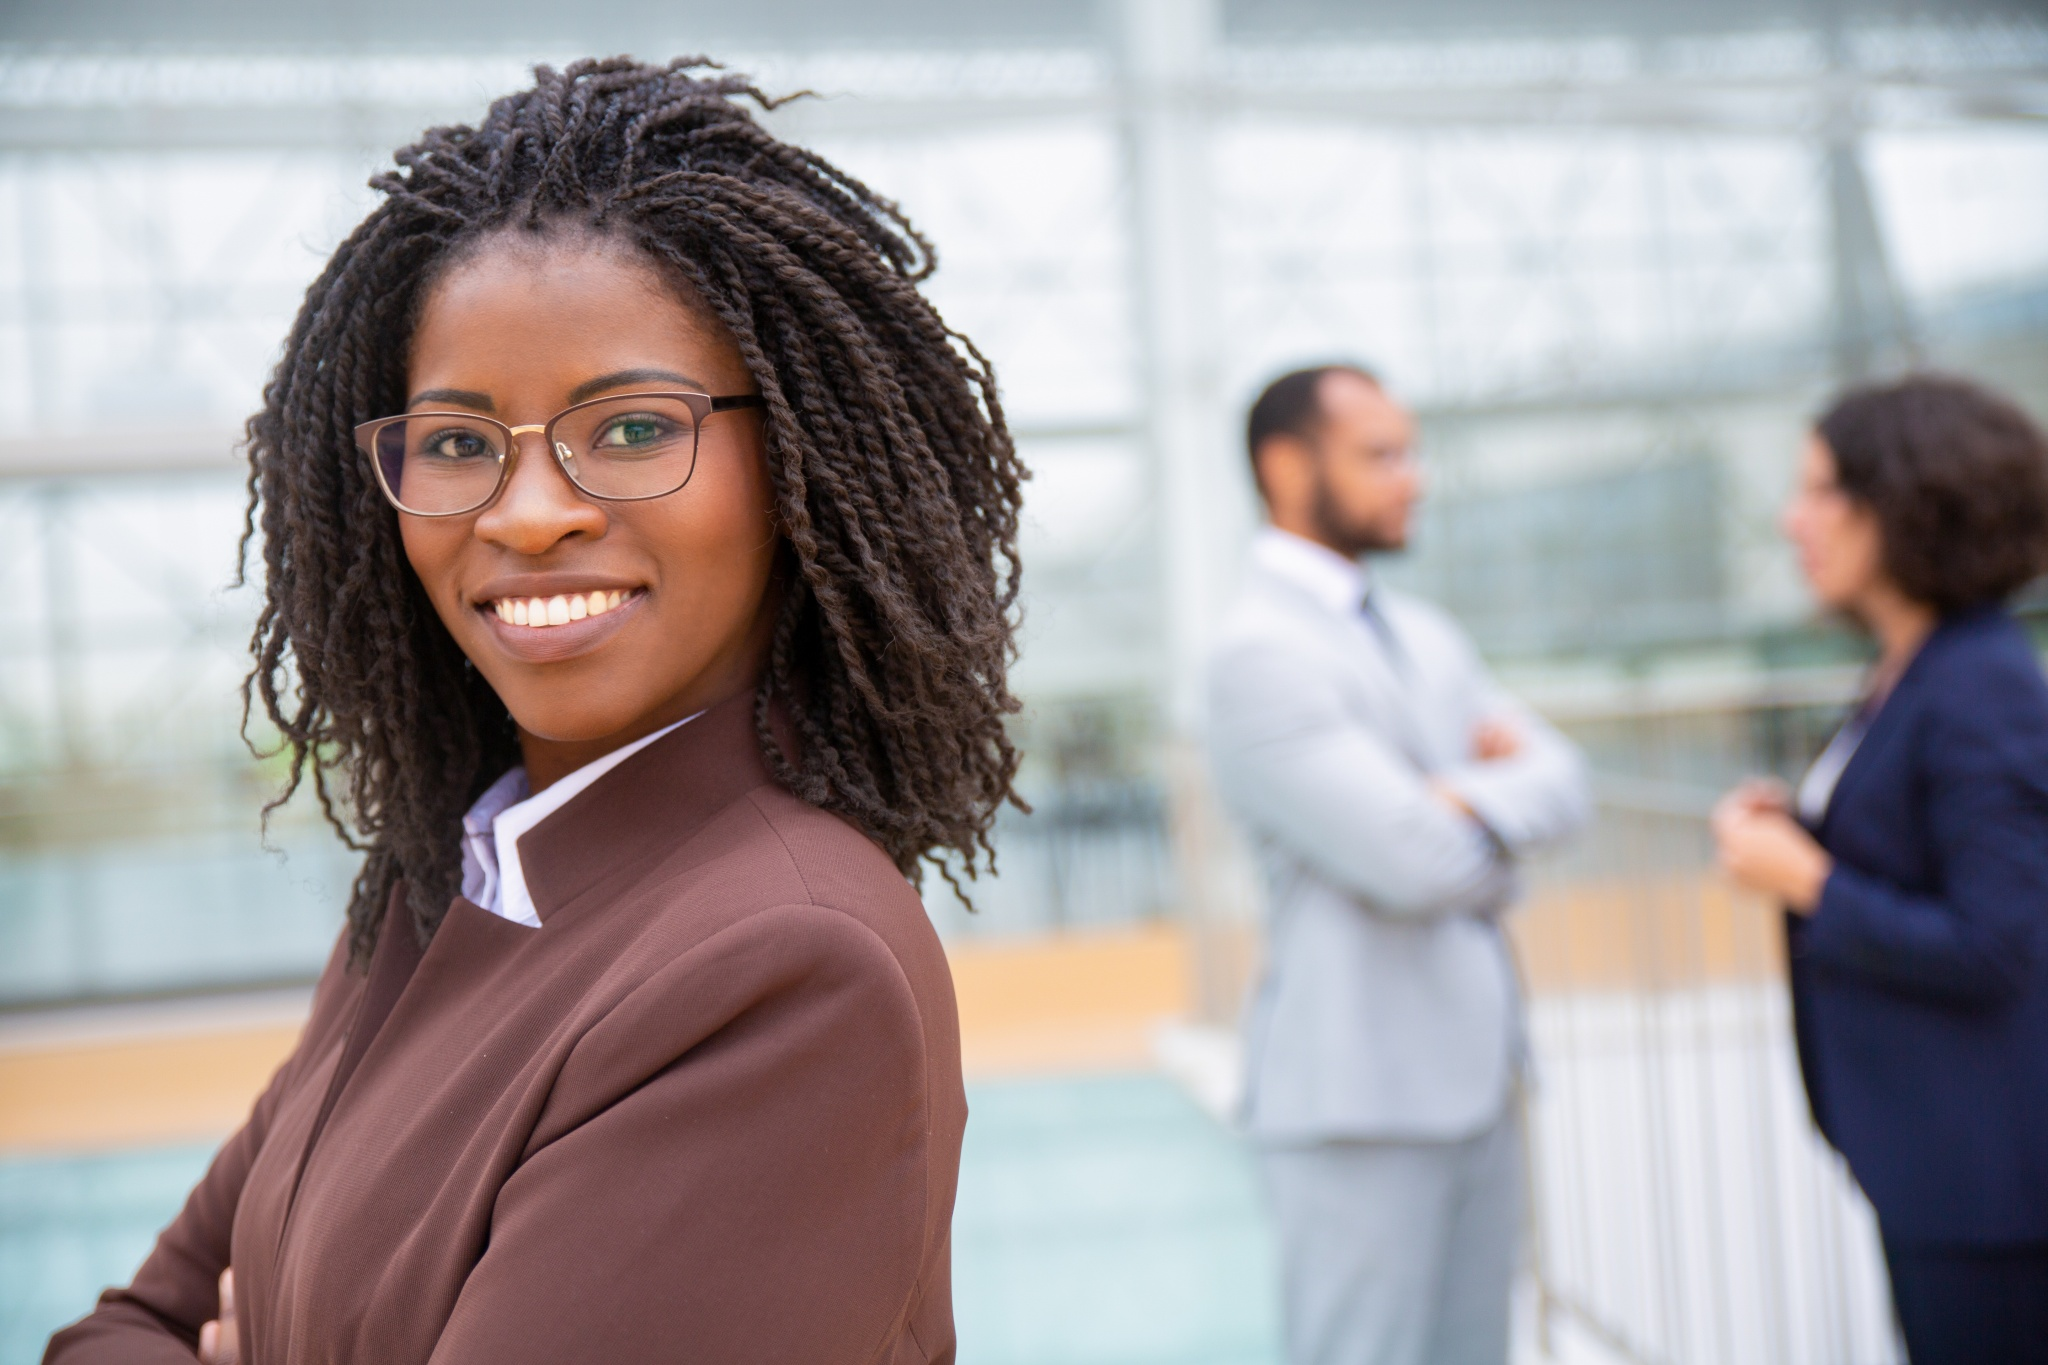 Cheerful young businesswoman in eyeglasses. Portrait of happy young African American businesswoman smiling at camera. Leader concept